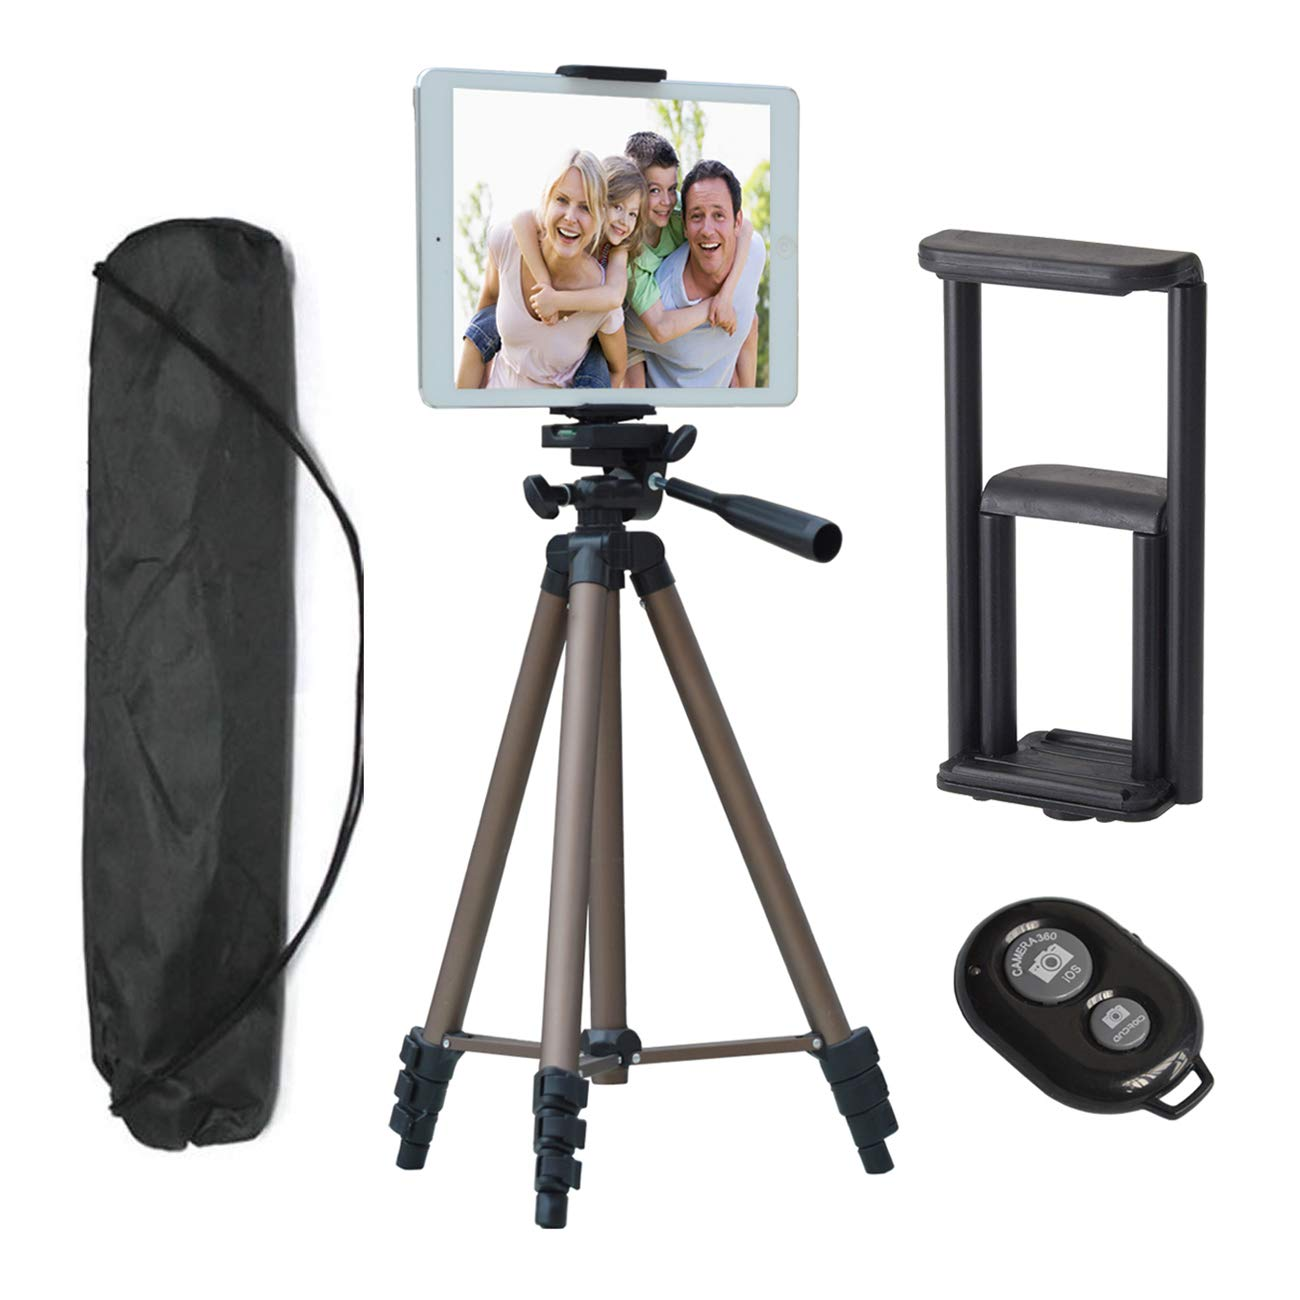 Tripod for iPad iPhone Camera Tablet,50-inch Aluminum Alloy Tripod + Wireless Remote + 2 in 1 Mount Holder for Smartphone (Width 2-3.2''),Tablet (Width 4.3-7.2'') by TESVERO